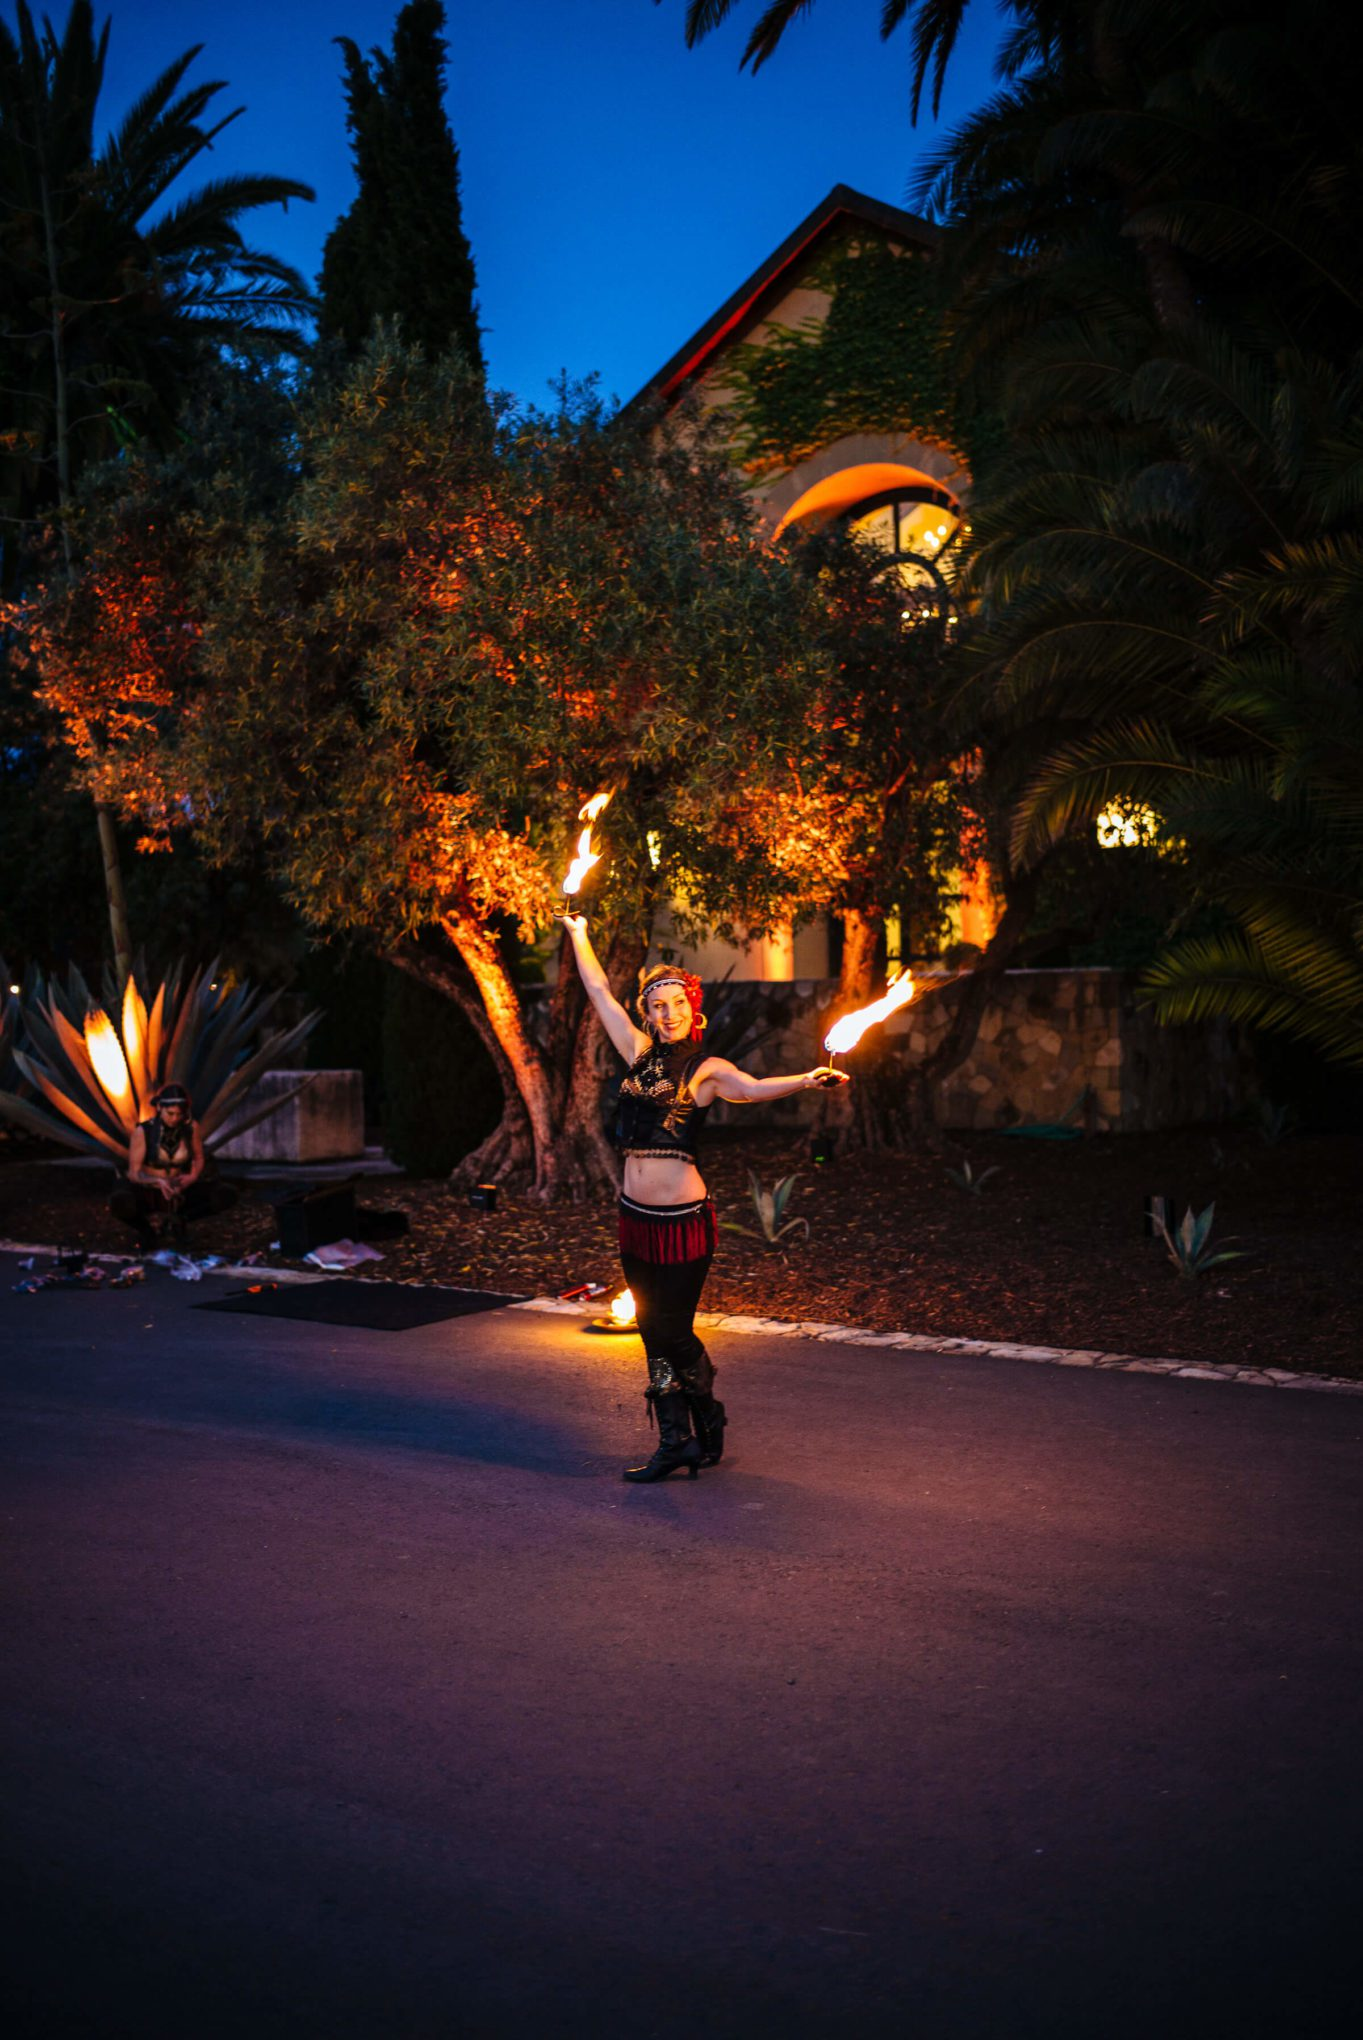 Fire dancers at Round Pond Estate Sunset Palm Dinner in Napa, The Taste SF